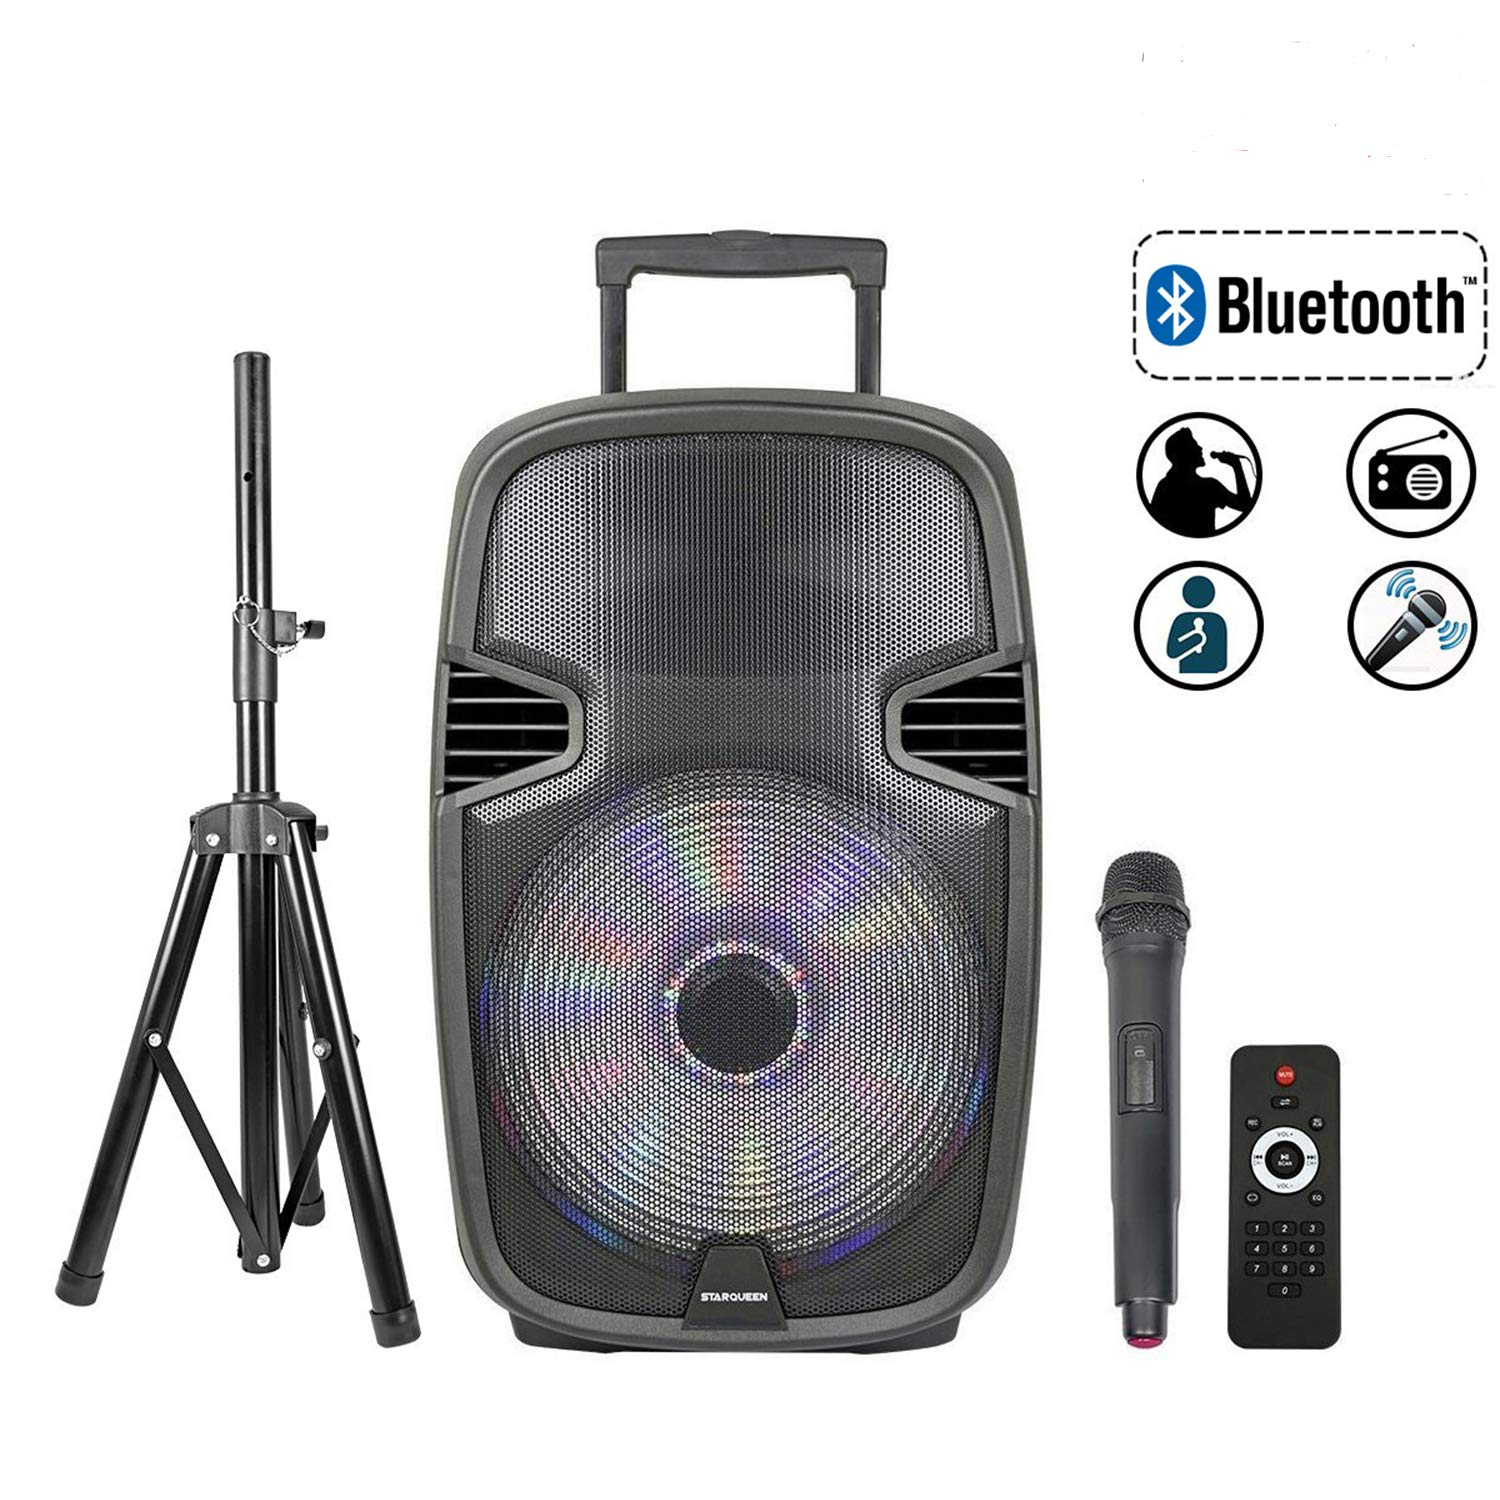 STARQUEEN 15'' Portable Bluetooth Speaker, Outdoor Rechargeable PA System with Wireless Microphone/Remote/Wheels/DJ Lights/Stand, Big Karaoke Party Amplifier Sound System with AUX/FM Radio/SD/USB